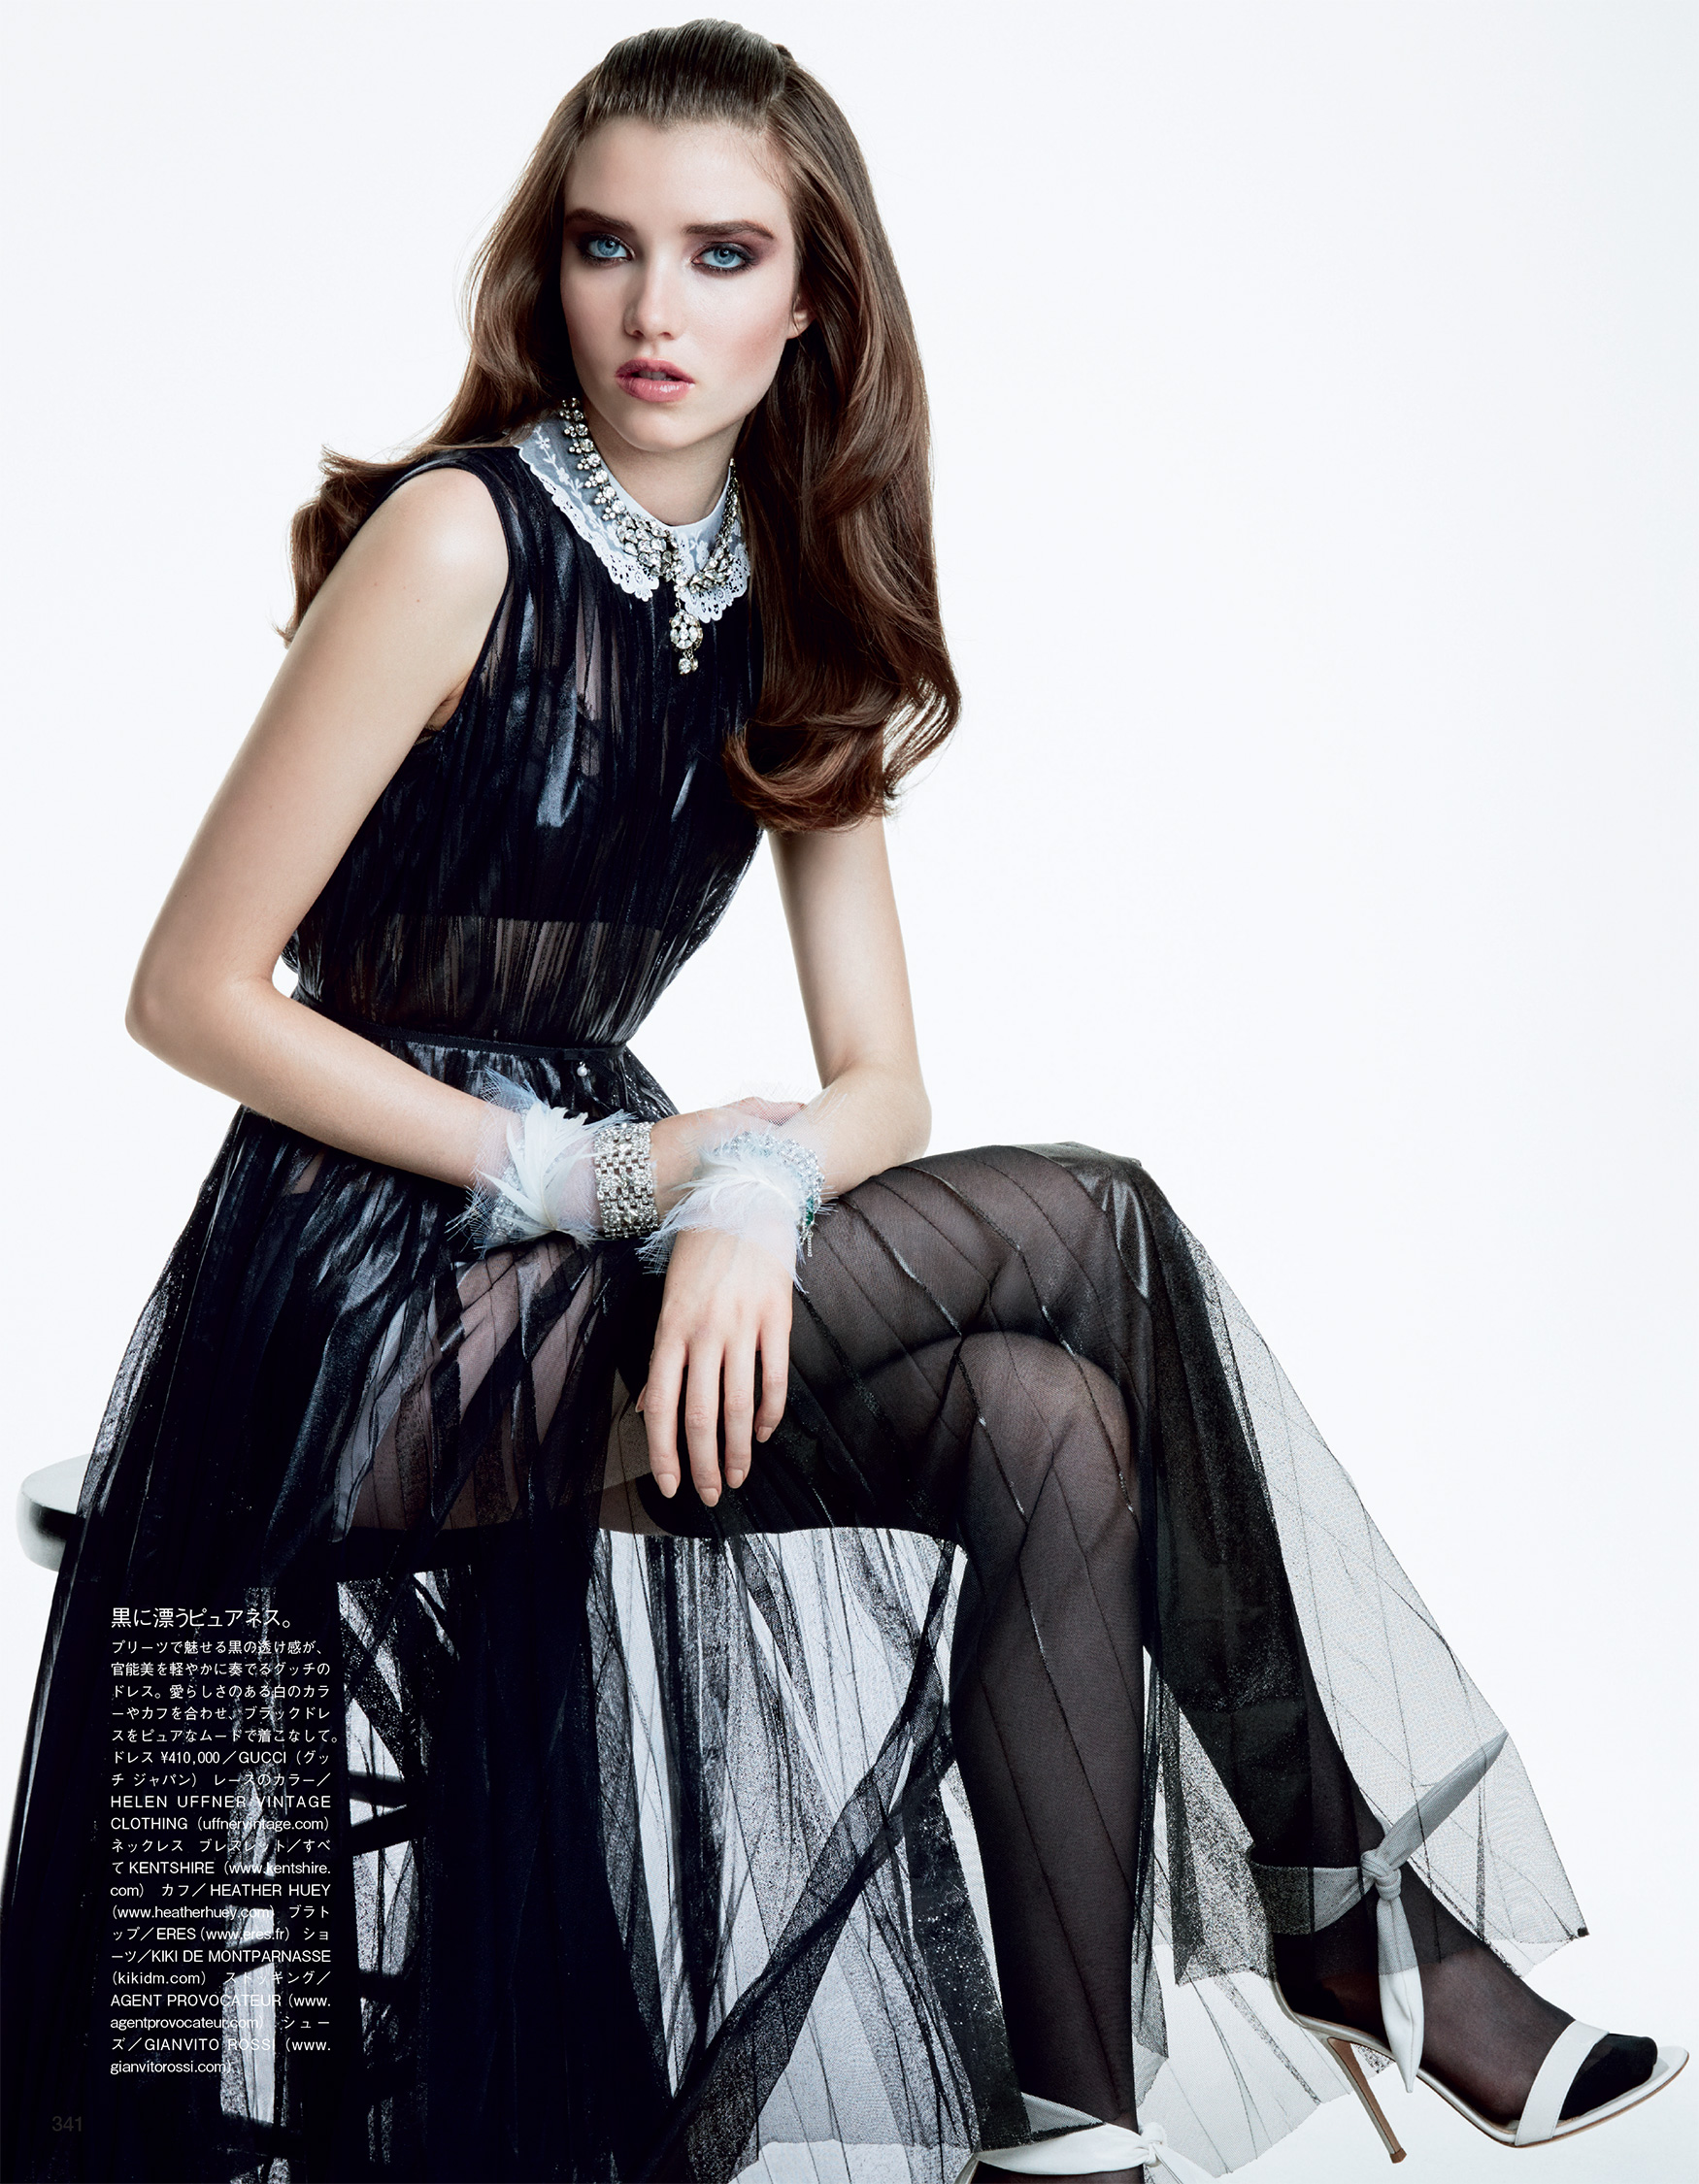 Giovanna-Battaglia-Vogue-Japan-October-2015-Patrick-Demarchelier-4.jpg